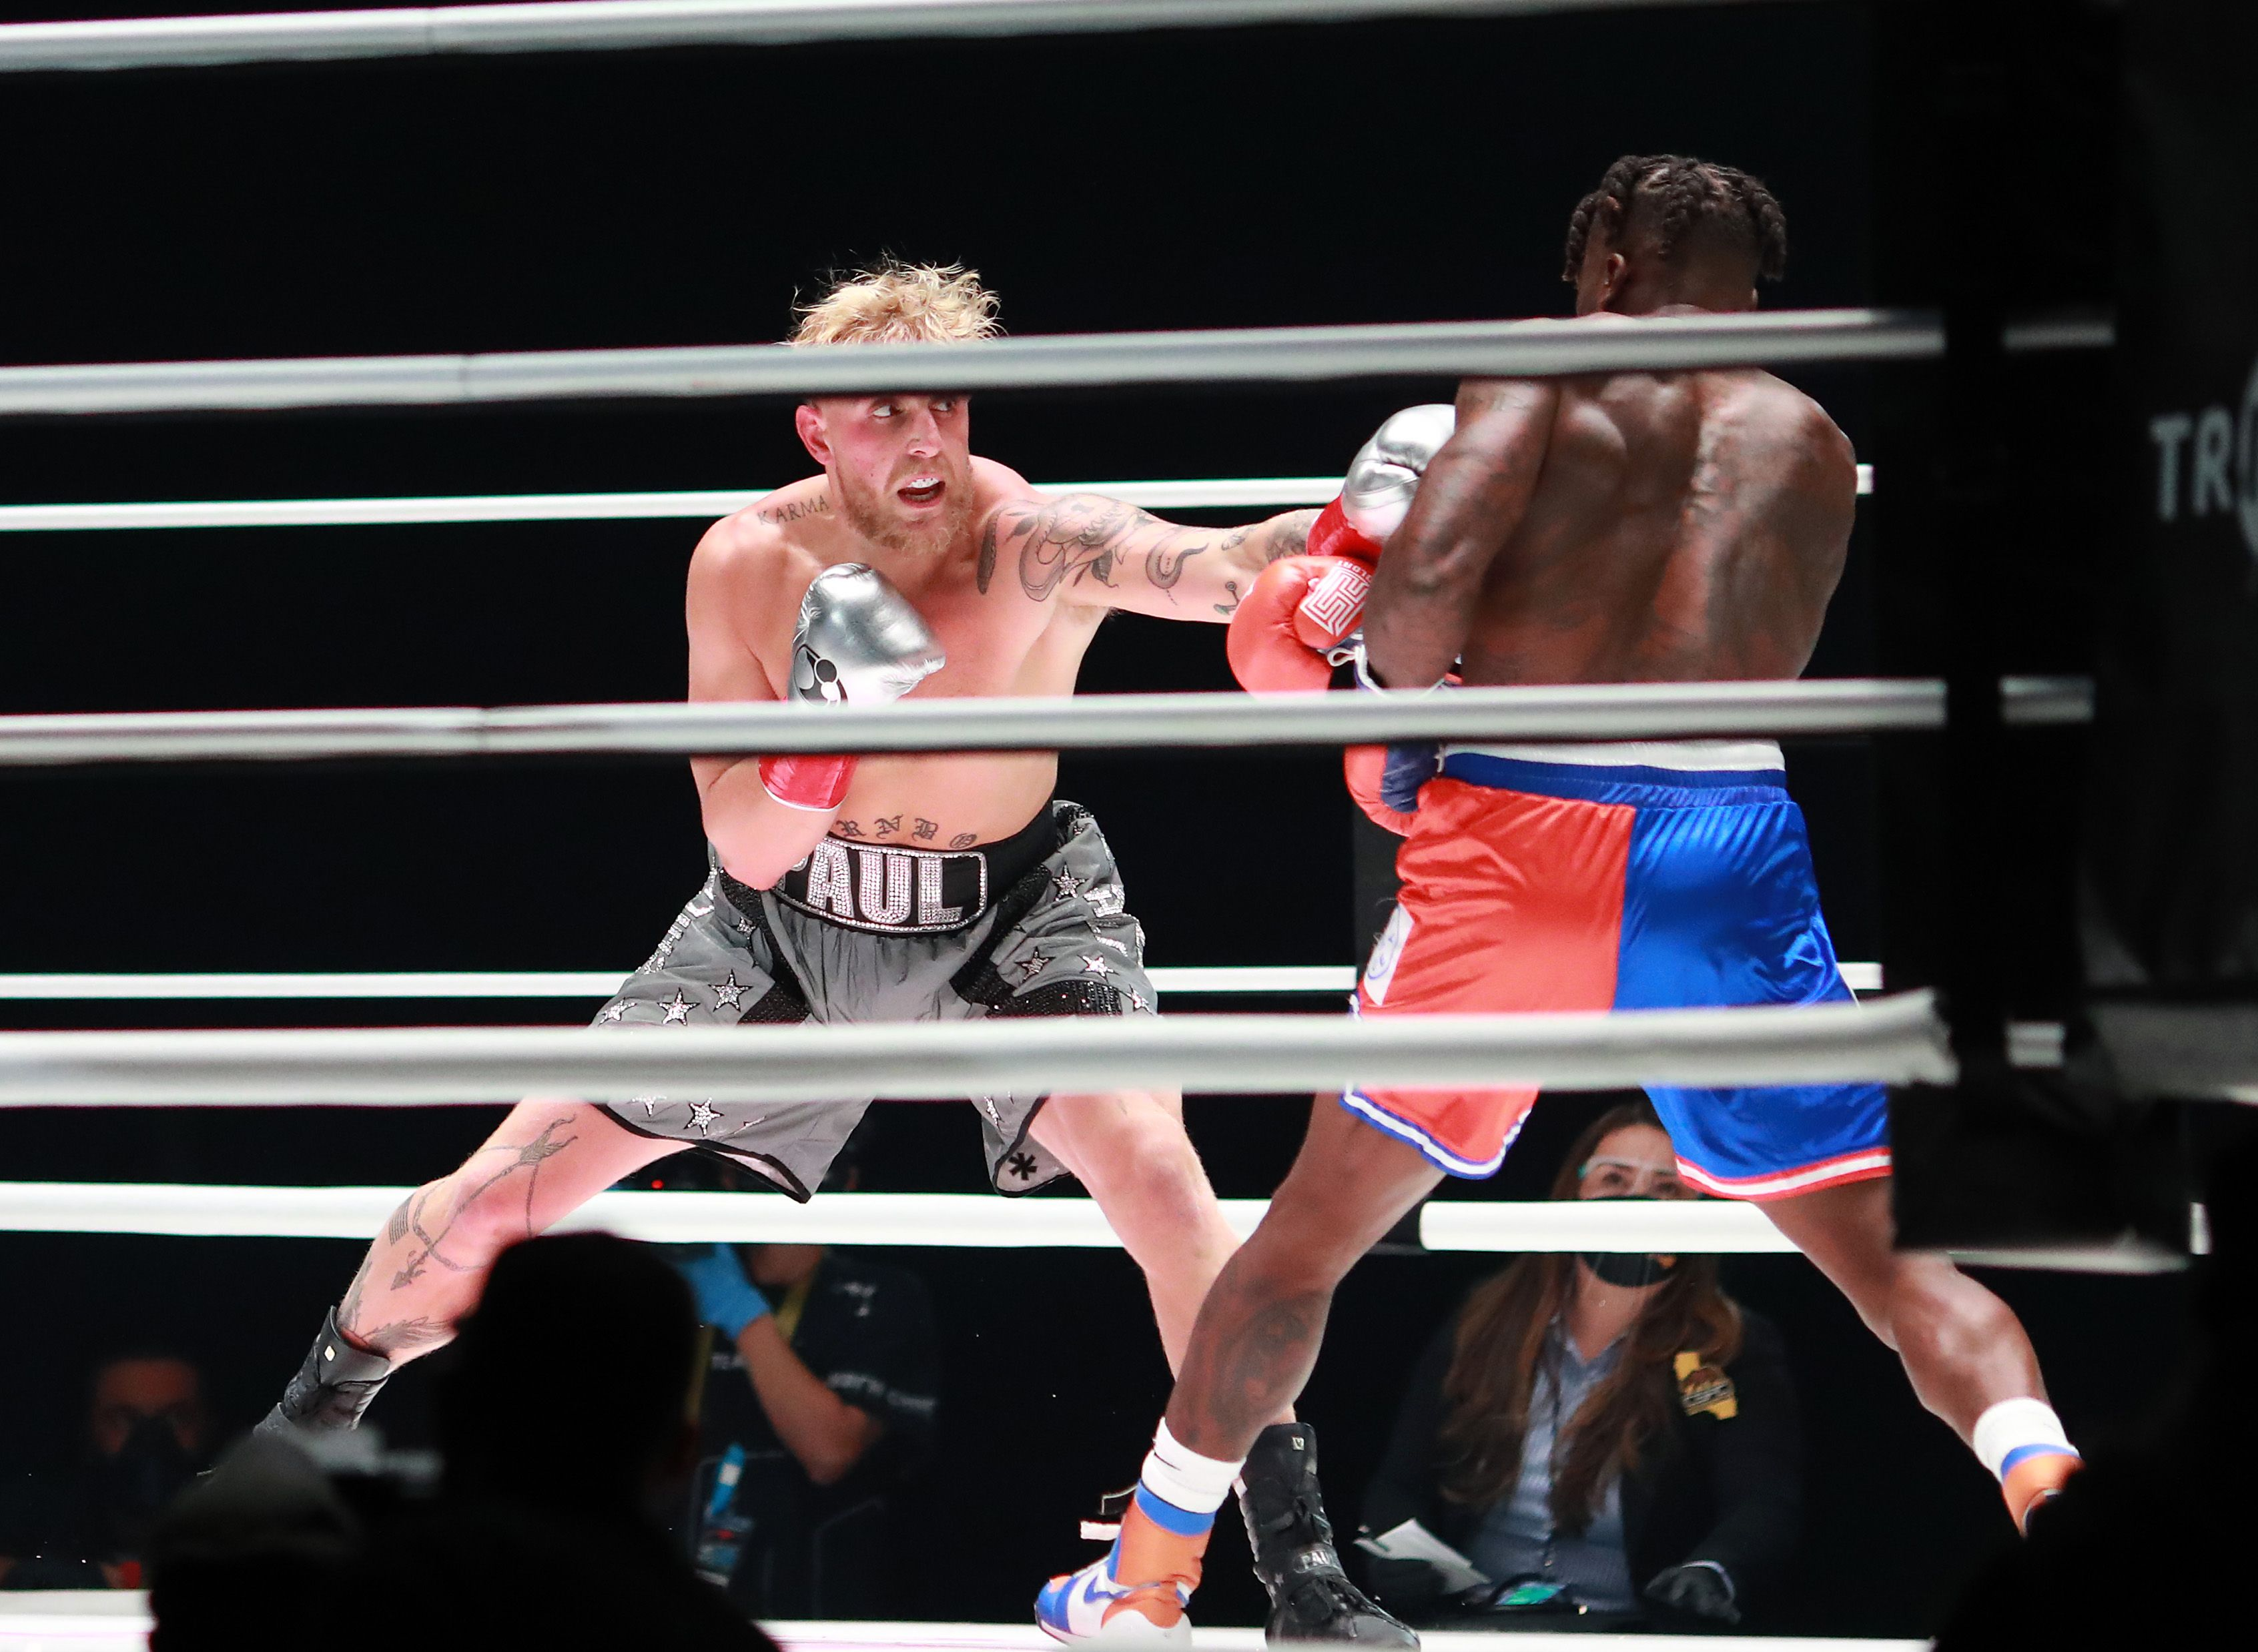 Jake Paul boxes against former NBA player Nate Robinson.